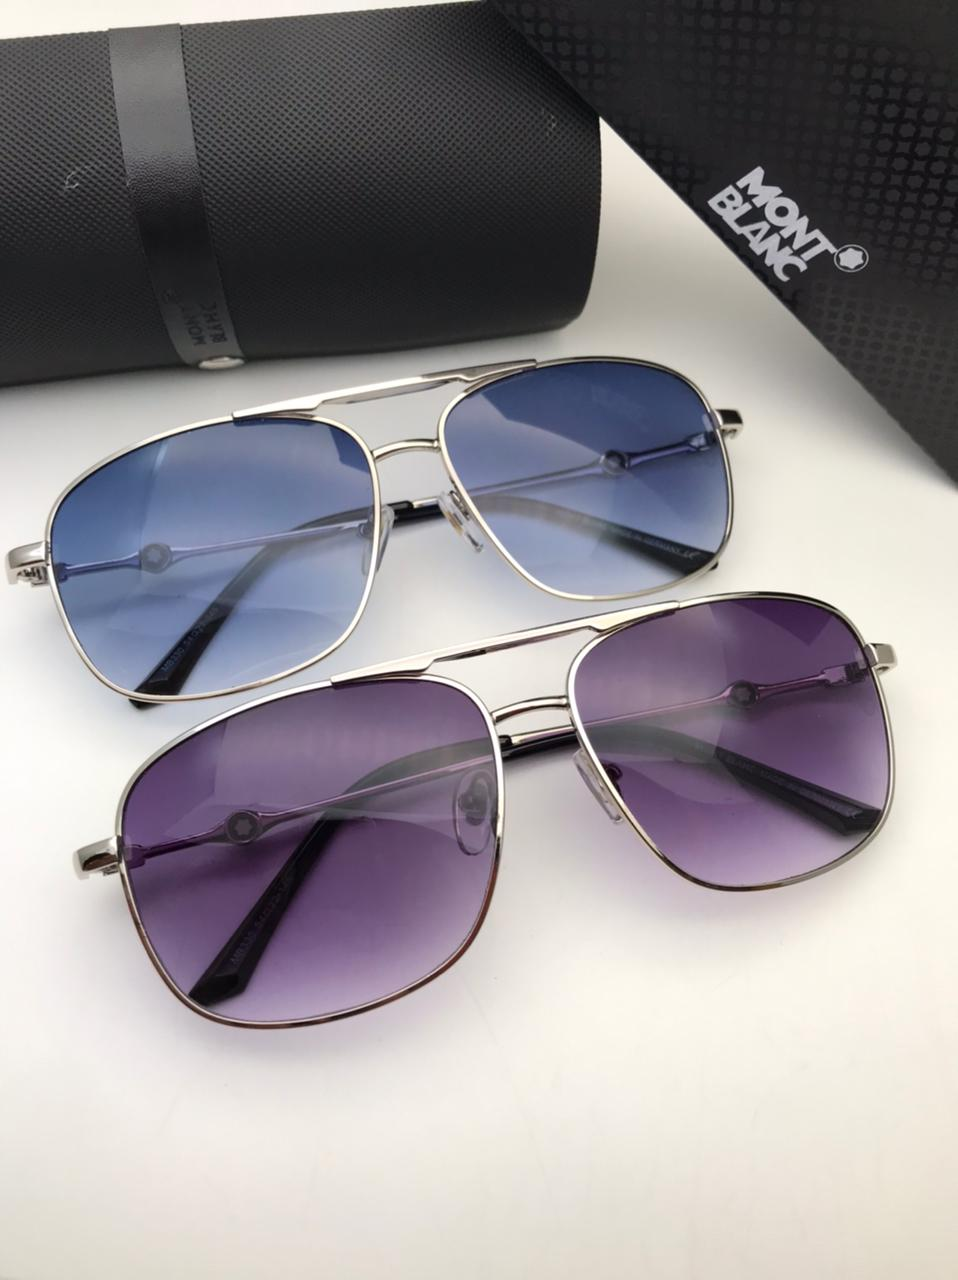 Mont Blanc Sunglasses for Men with Brand Box